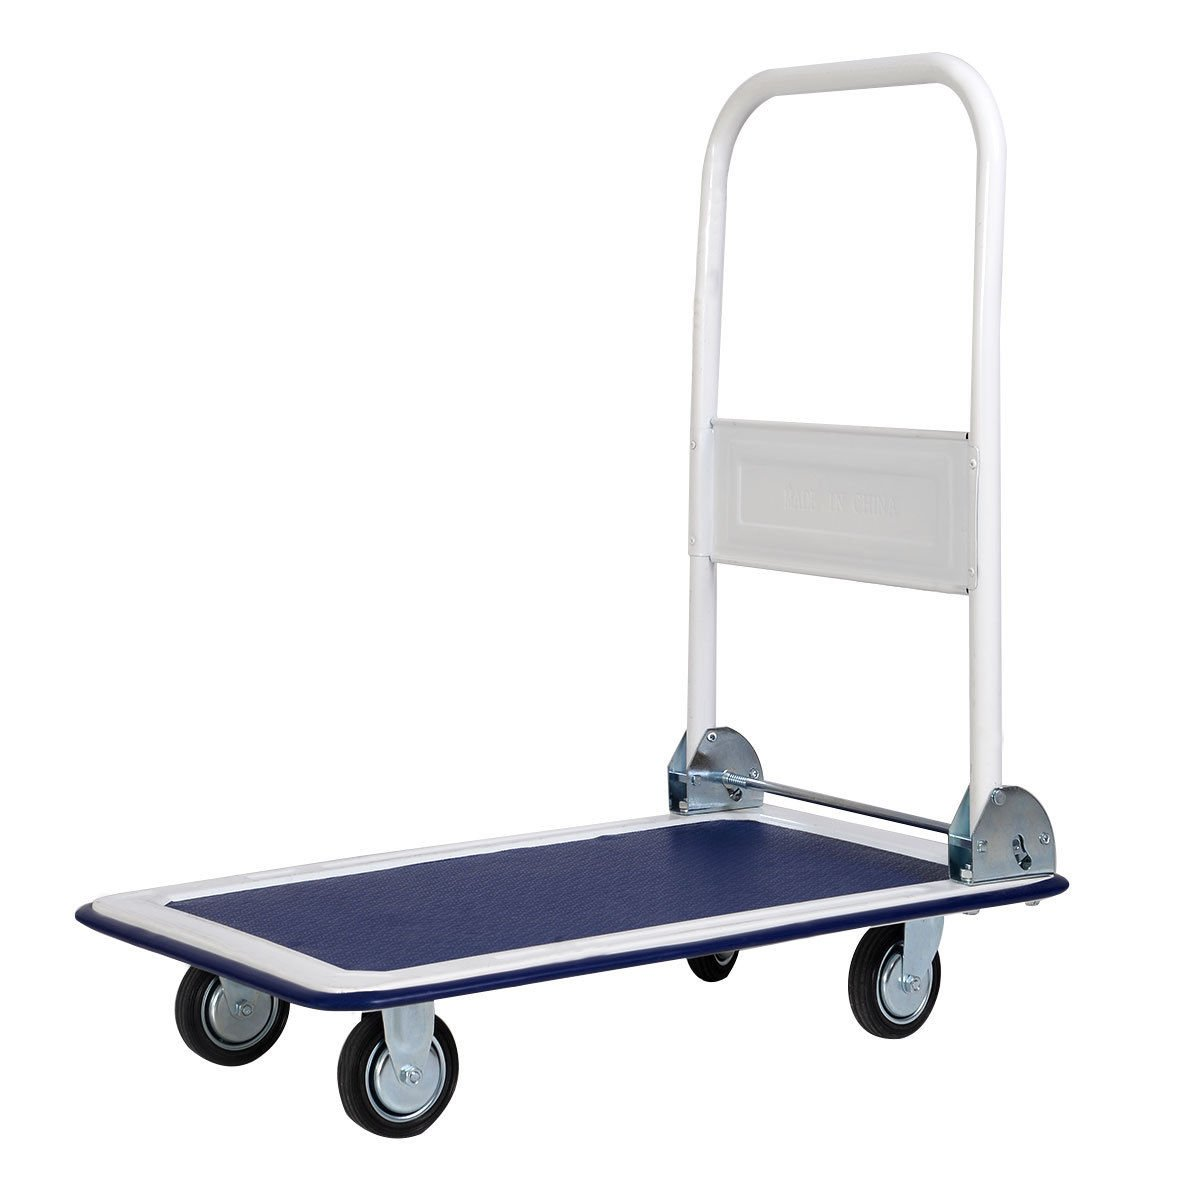 New 330lbs Blue Platform Cart Dolly Folding Foldable Moving Warehouse Push Hand Truck by unbrand